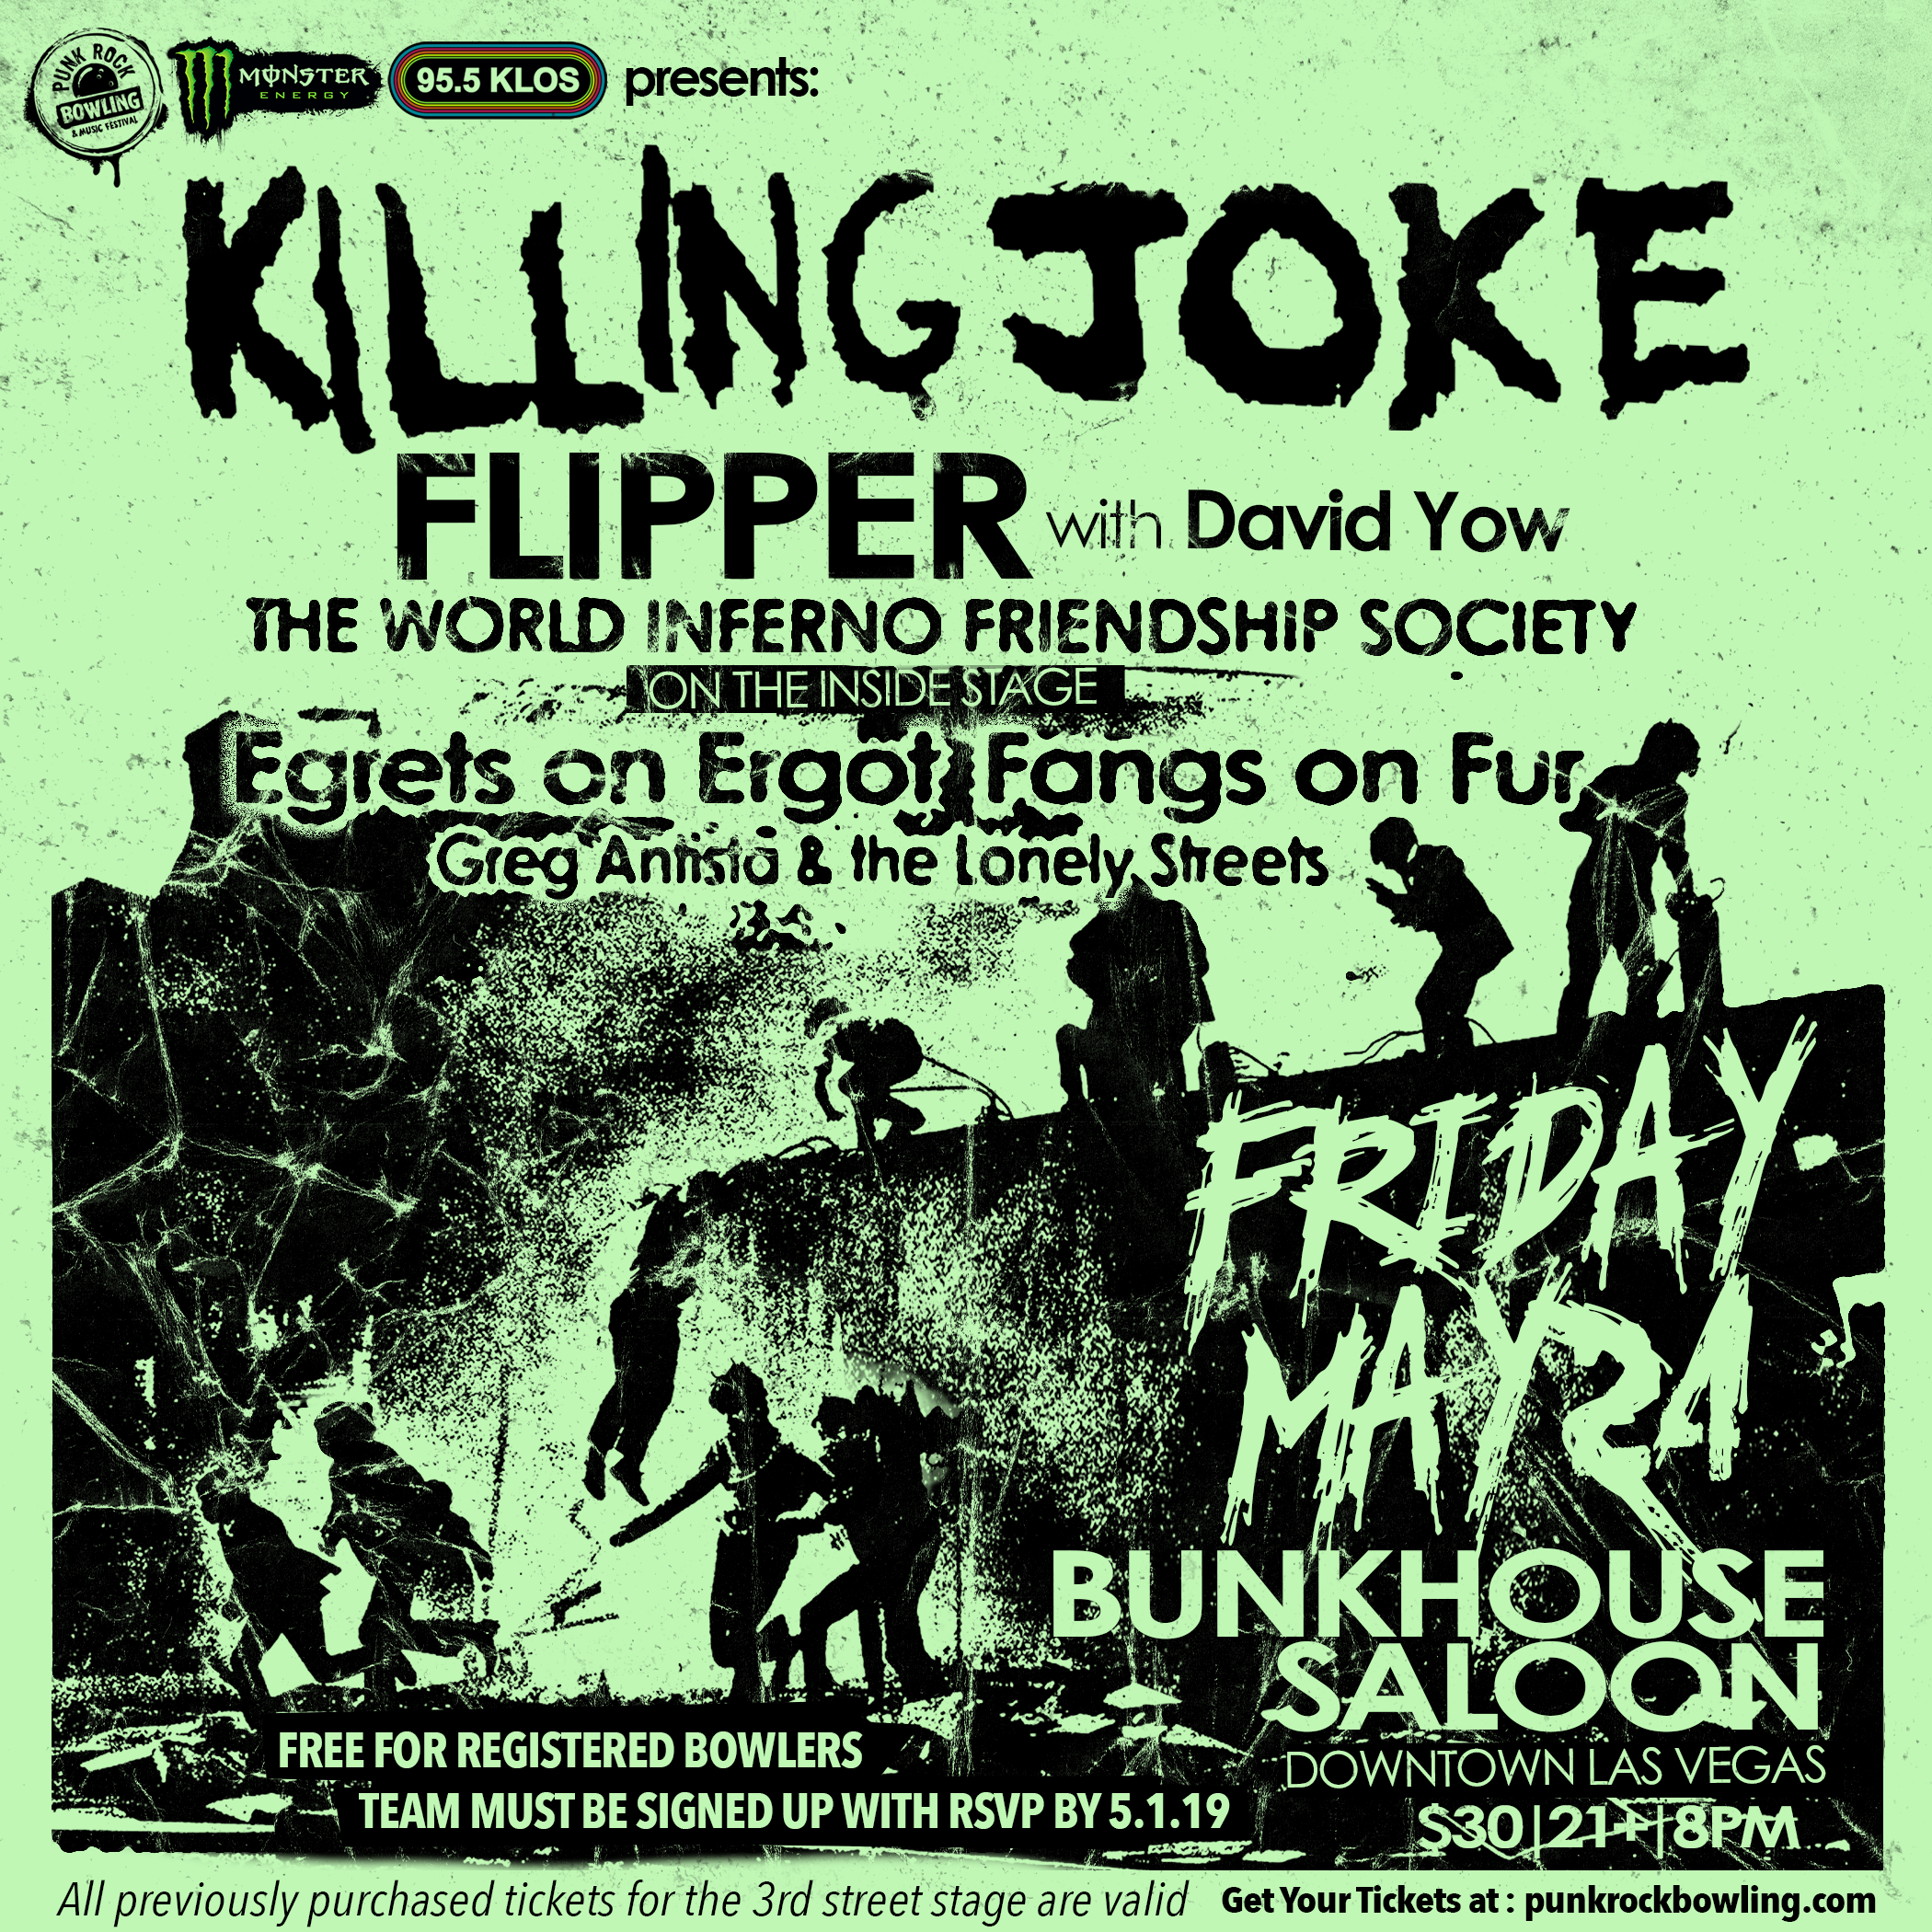 Killing-Joke-Punk-Rock-Bowling-2019-Club-Show-KLOS-Monster-Energy-Flipper 5.24.19